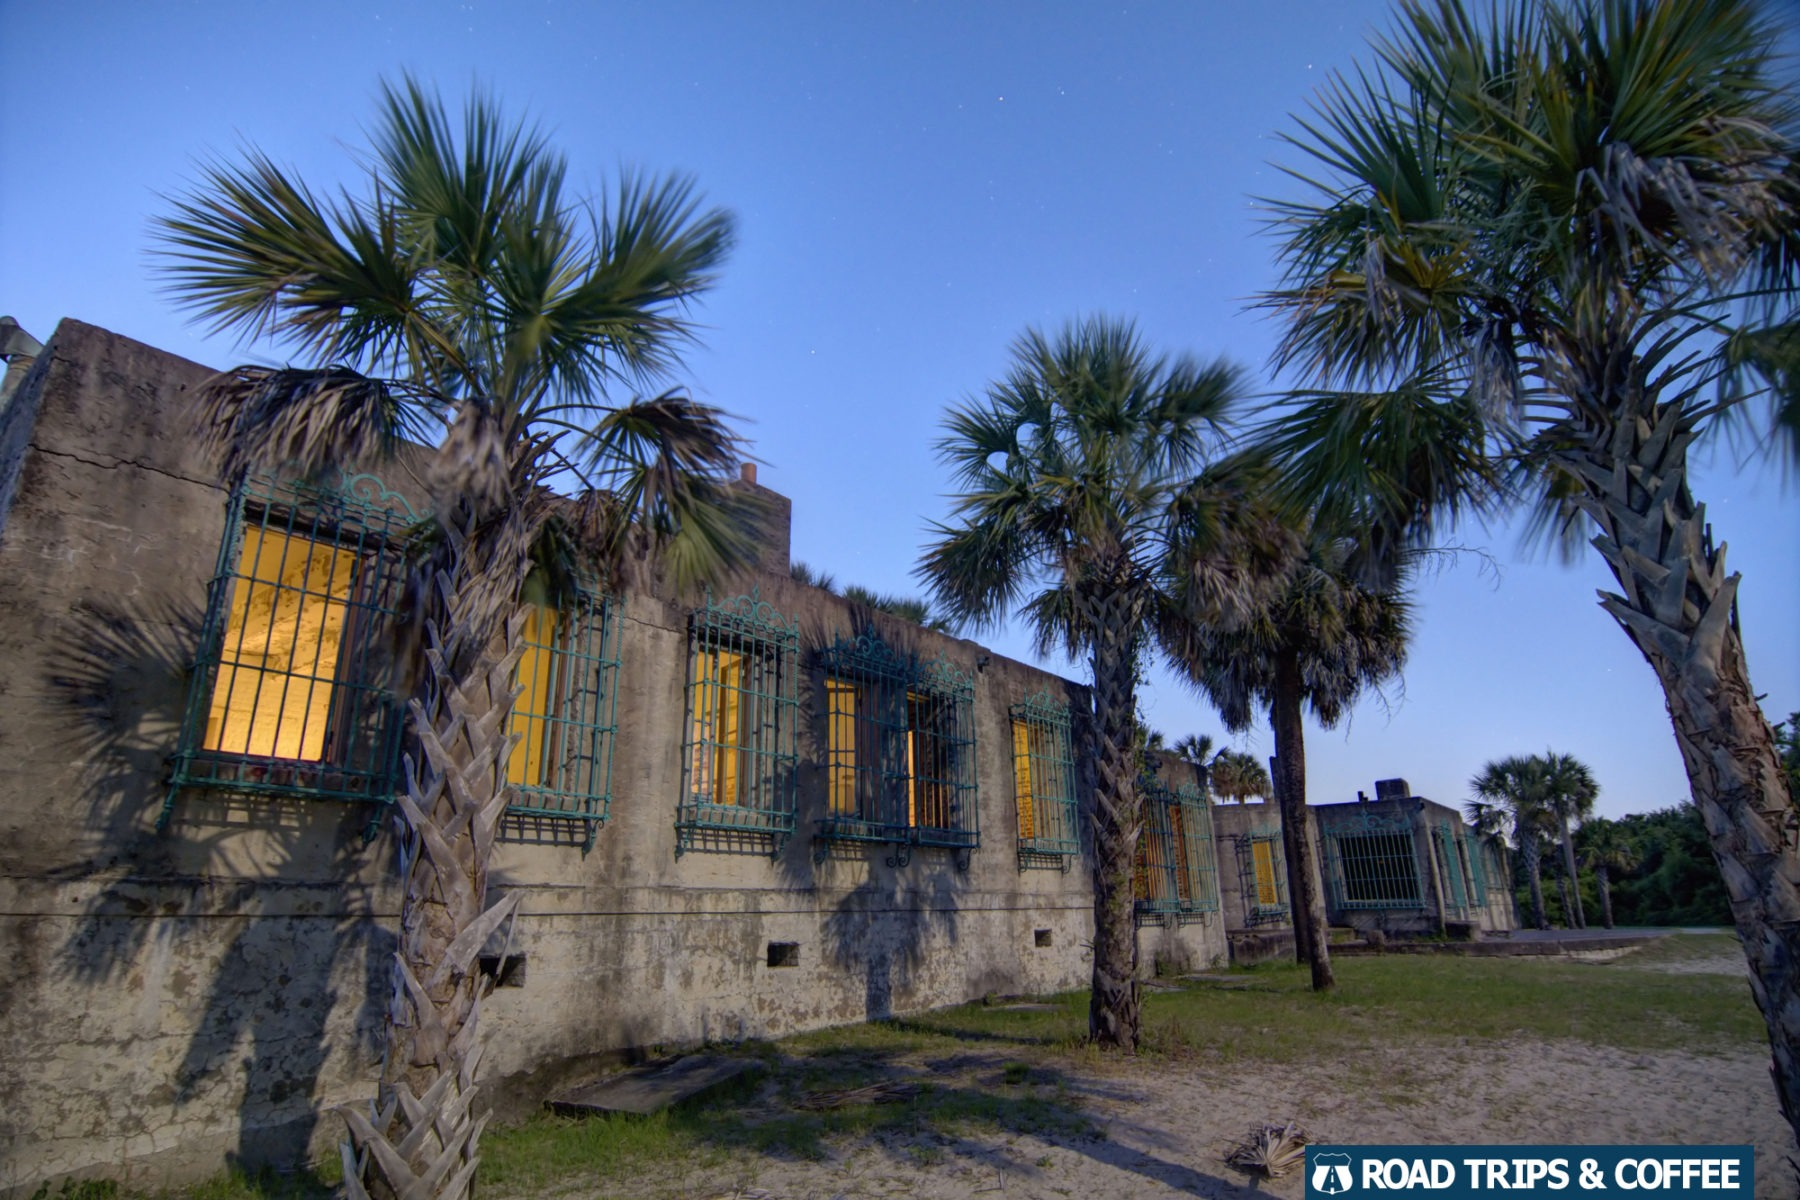 Dusk with dark blue skies and lights from inside Atalaya Castle at Huntington Beach State Park in Murrells Inlet, South Carolina